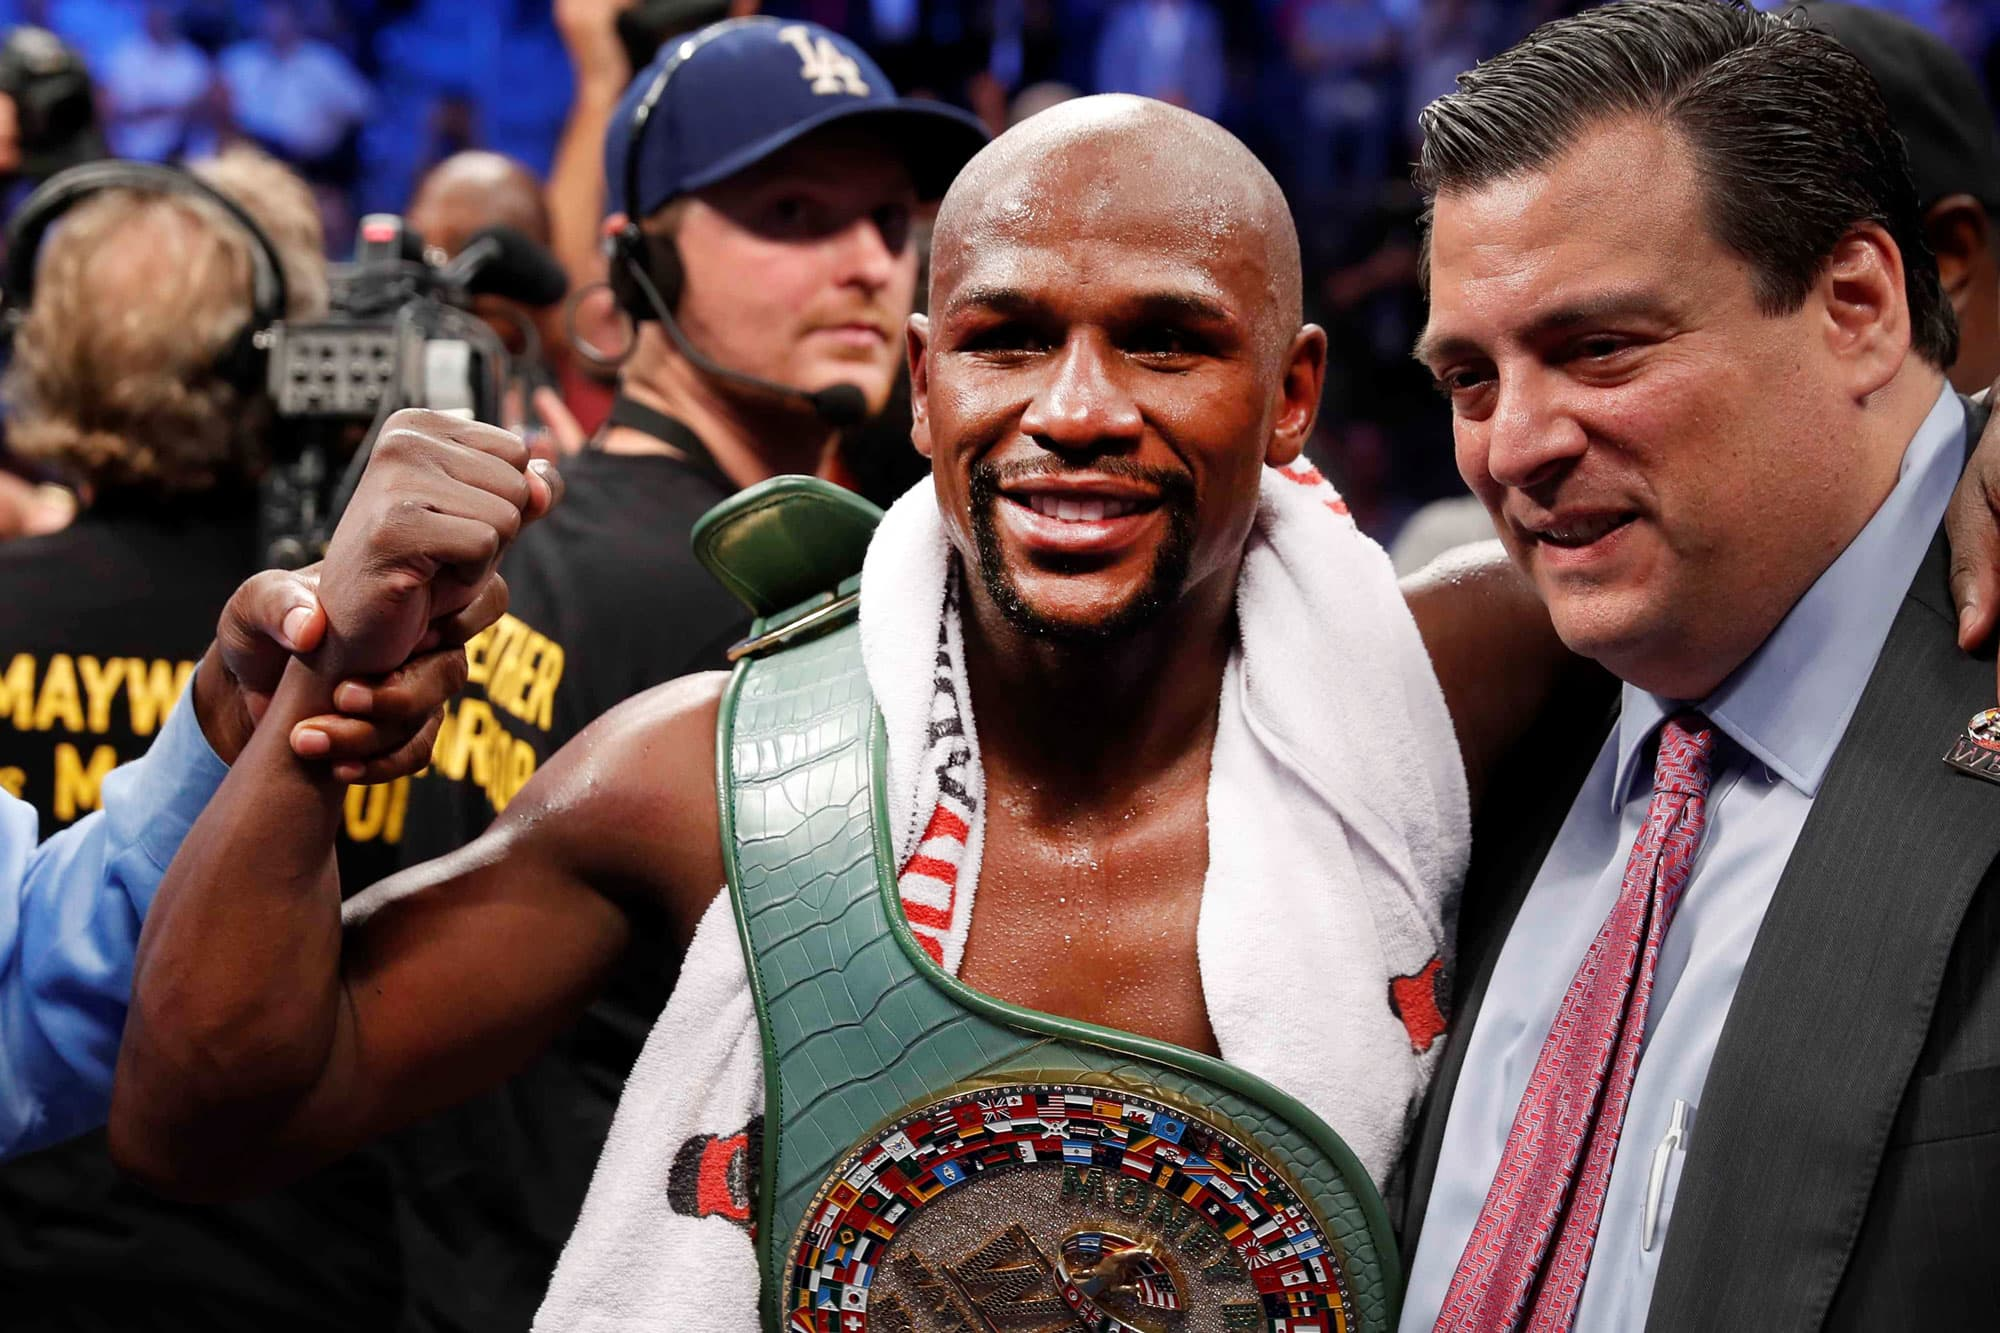 Floyd Mayweather Jr. celebrates with the belt and President of the WBC Mauricio Sulaiman after defeating Conor McGregor, August 26, 2017.